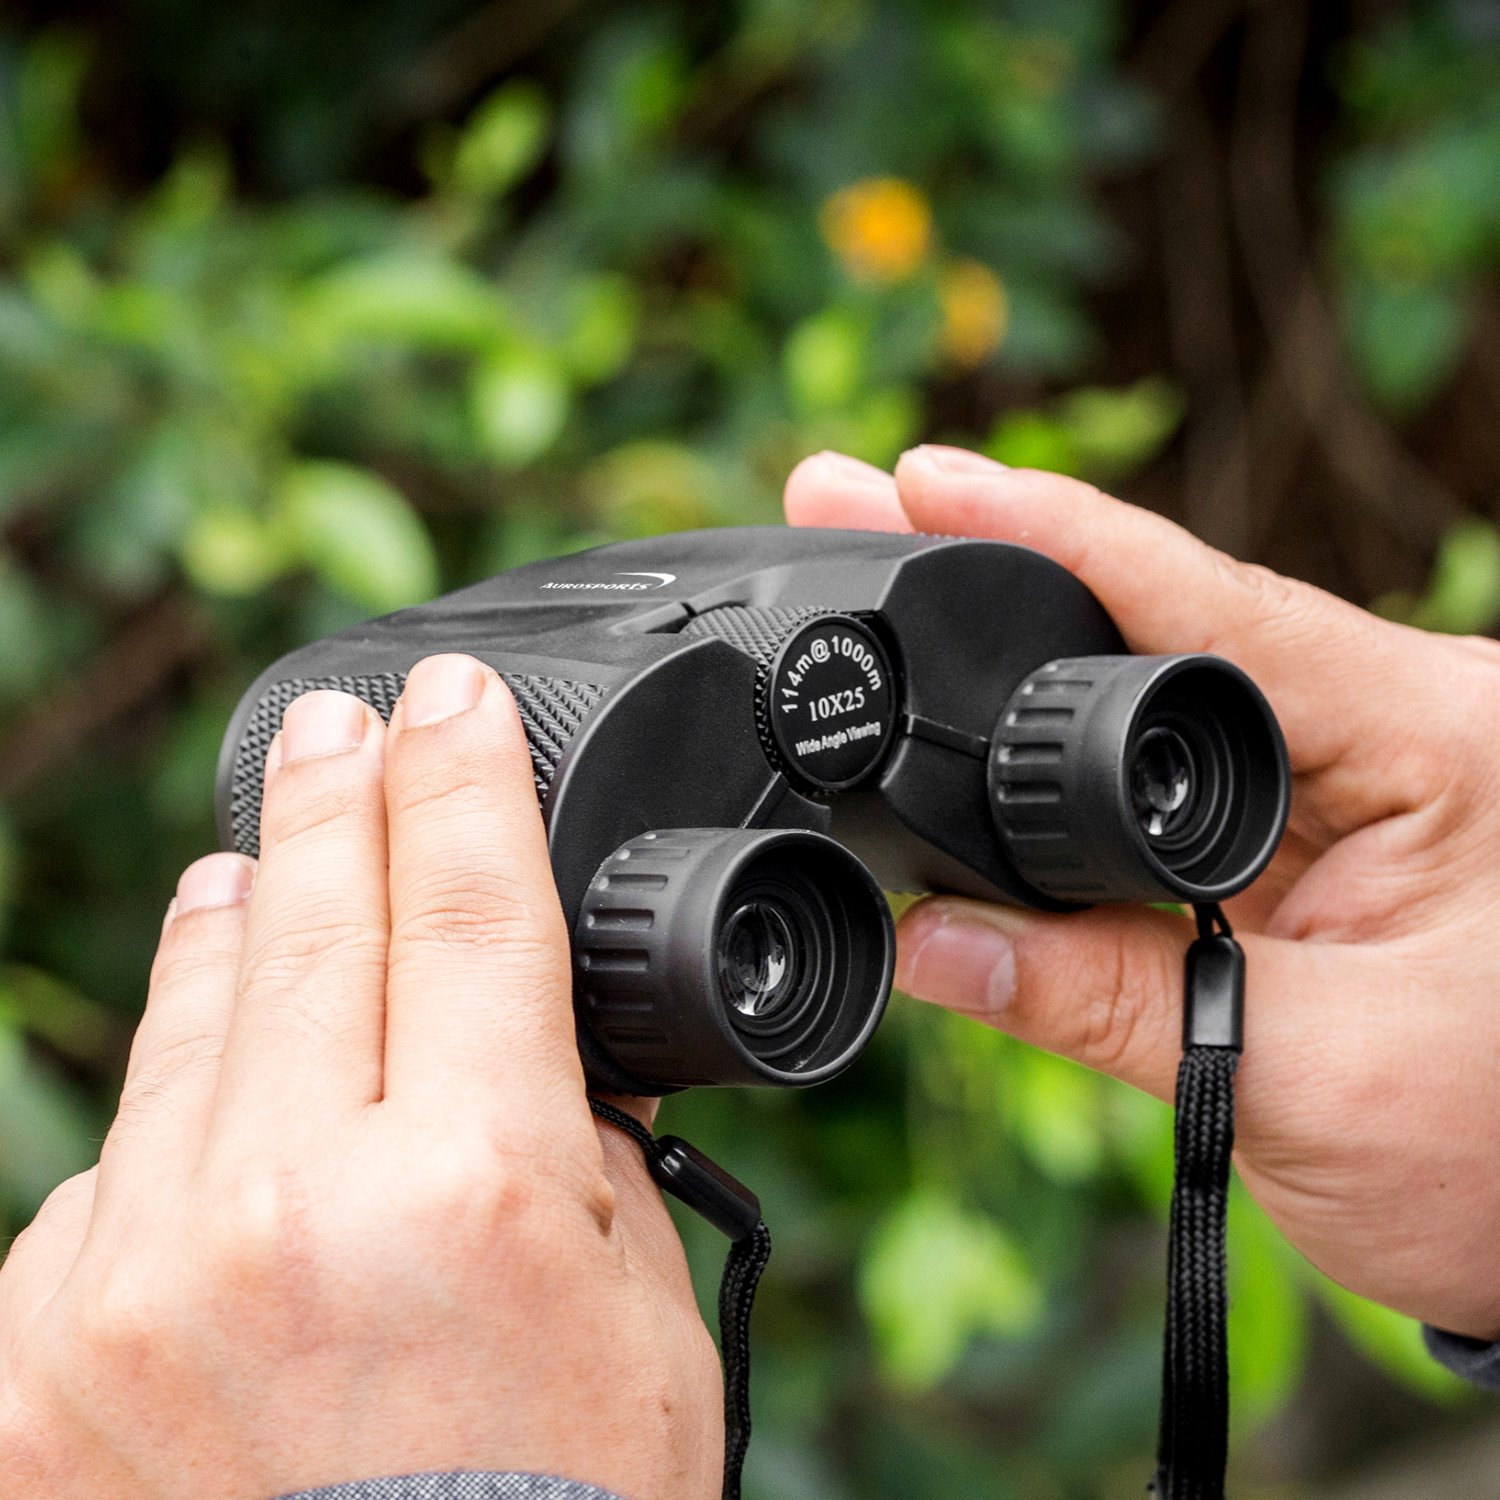 Aurosports 10x25 Folding High Powered Binoculars